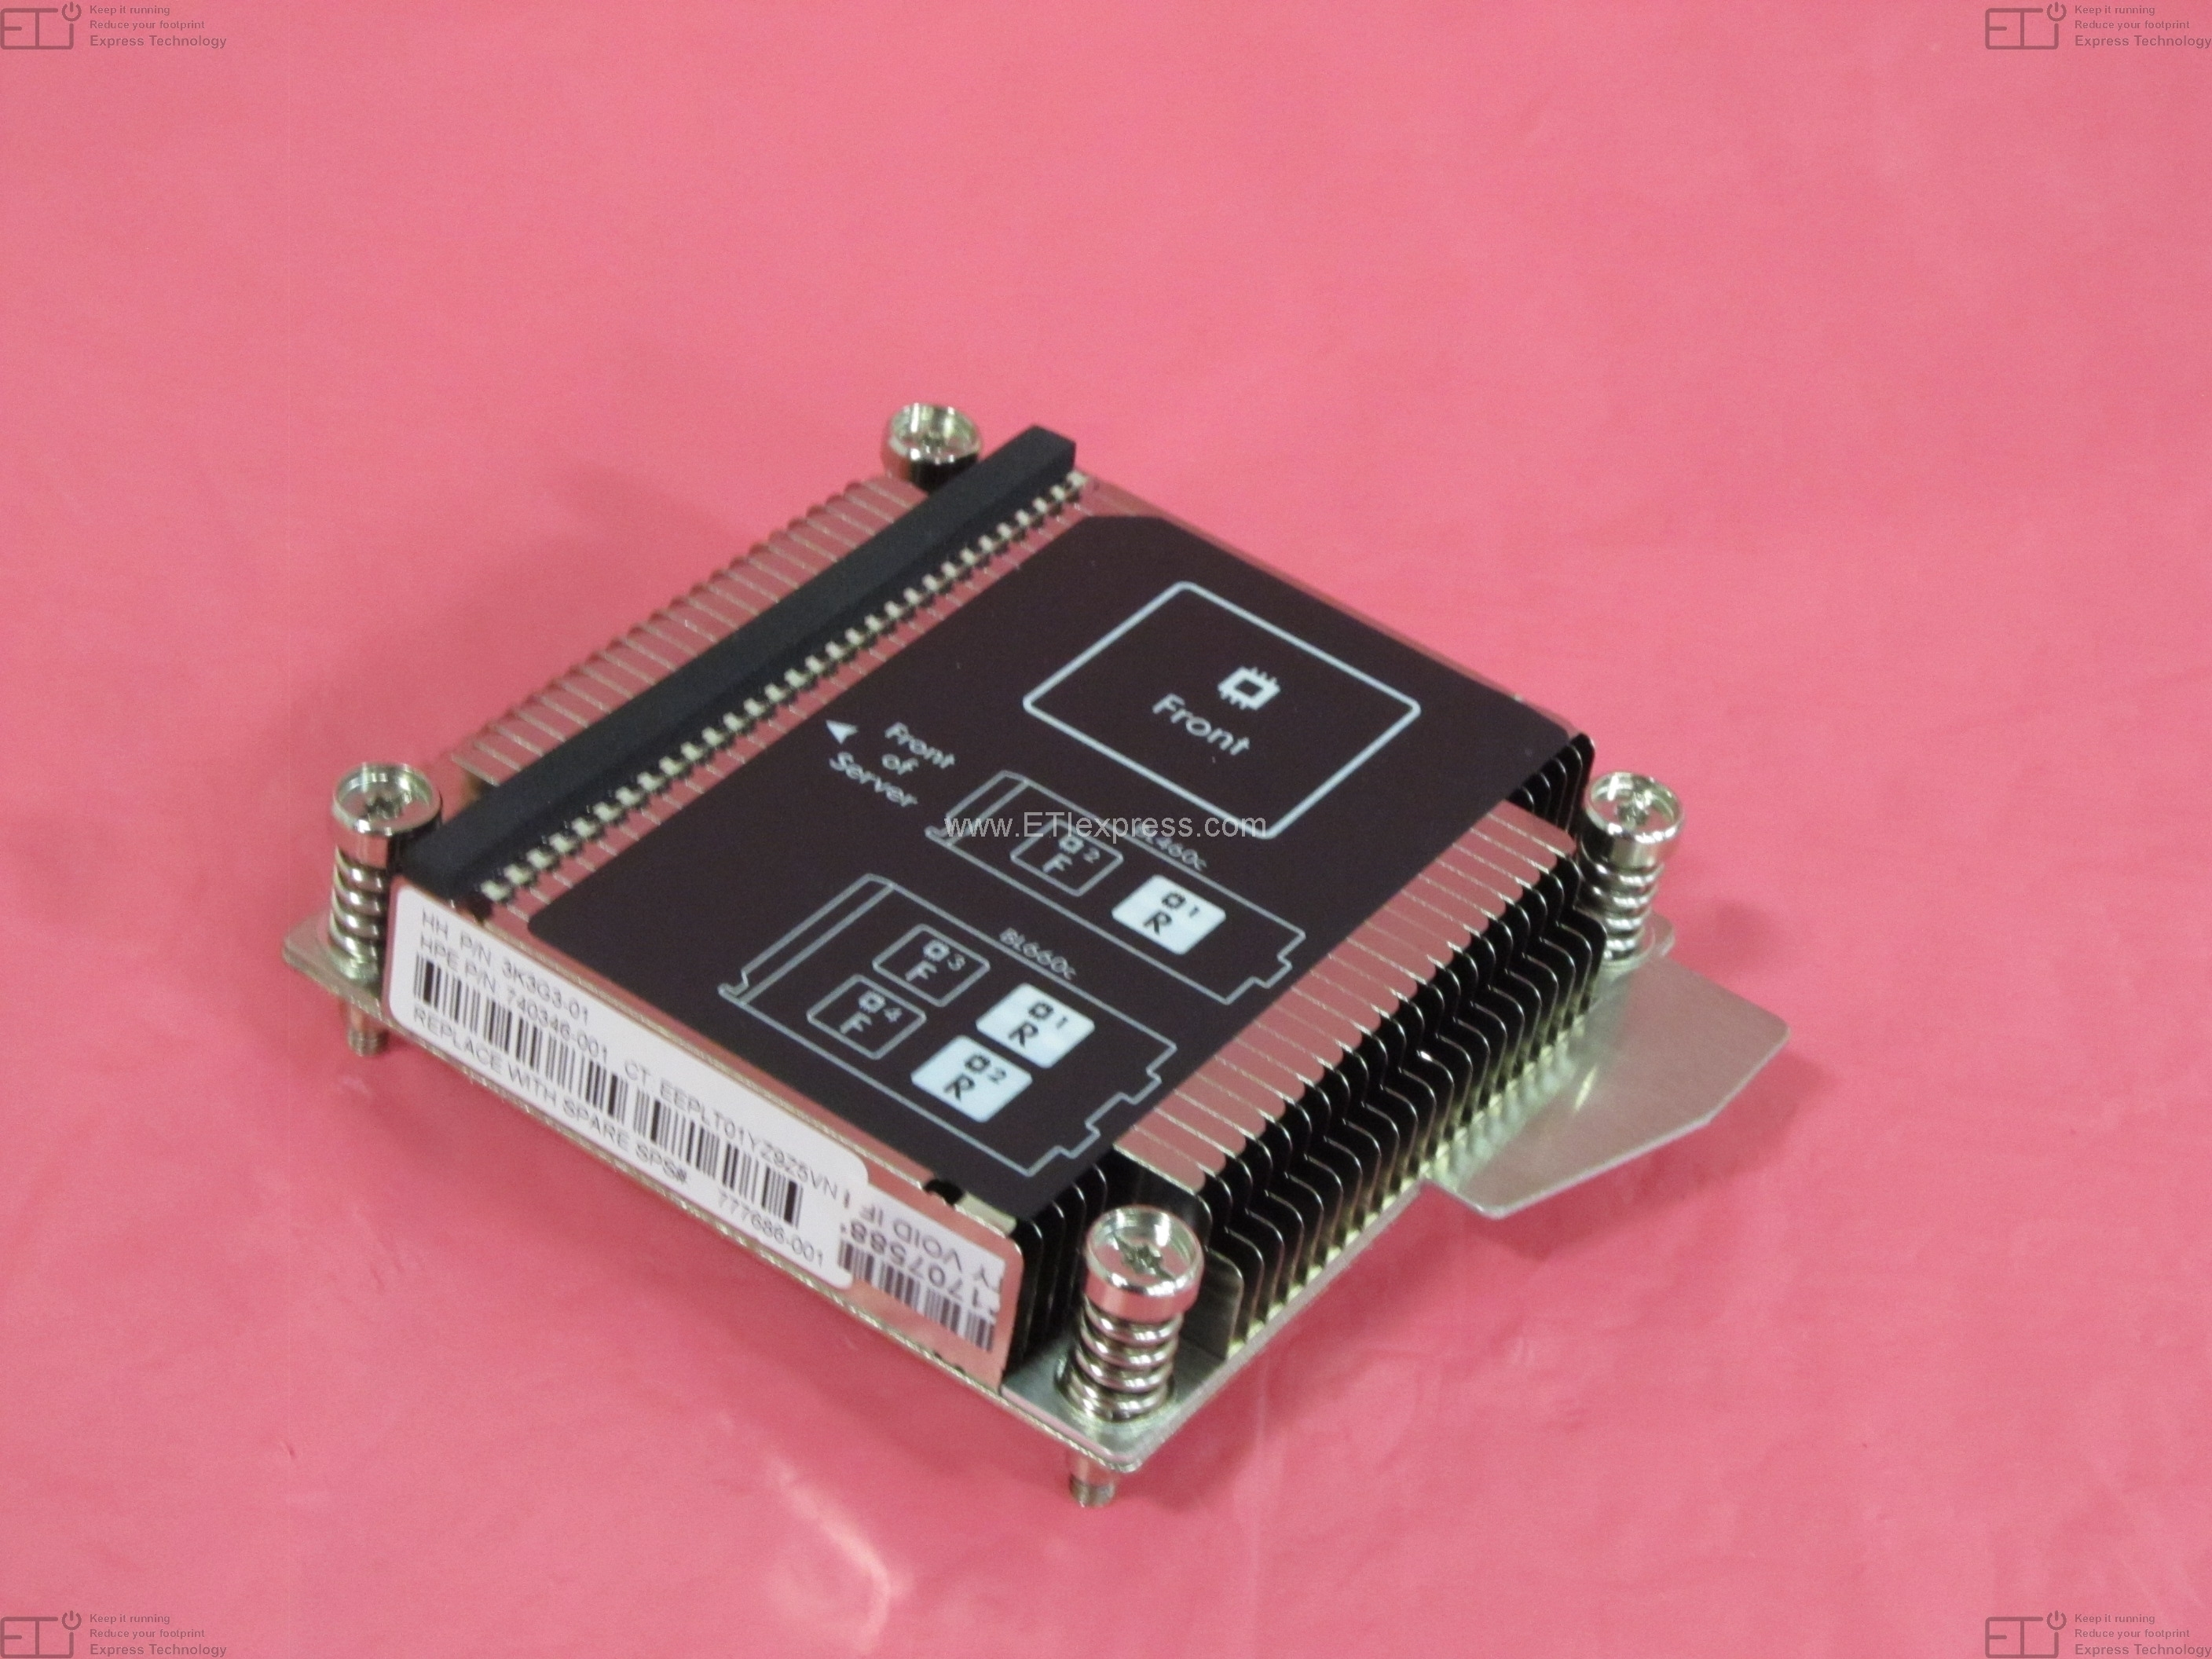 UMA HP 584305-001 Thermal fan and heat sink module